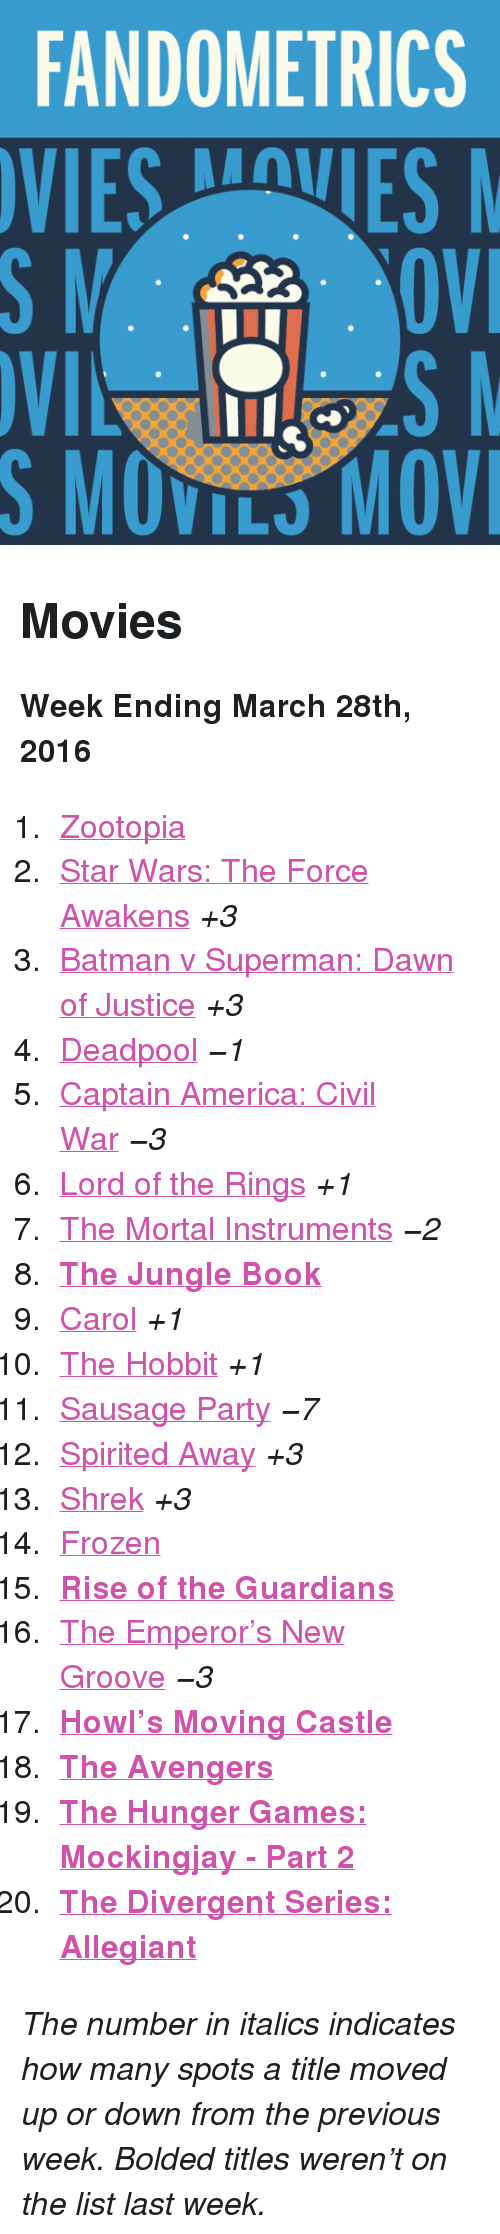 """New Groove: FANDOMETRICS  VIESVES  S MOVILS MOV <h2>Movies</h2><p><b>Week Ending March 28th, 2016</b></p><ol><li><a href=""""http://www.tumblr.com/search/zootopia"""">Zootopia</a></li>  <li><a href=""""http://www.tumblr.com/search/the%20force%20awakens"""">Star Wars: The Force Awakens</a><i>+3</i></li>  <li><a href=""""http://www.tumblr.com/search/batman%20v%20superman"""">Batman v Superman: Dawn of Justice</a><i>+3</i></li>  <li><a href=""""http://www.tumblr.com/search/deadpool"""">Deadpool</a><i>−1</i></li>  <li><a href=""""http://www.tumblr.com/search/captain%20america%20civil%20war"""">Captain America: Civil War</a><i>−3</i></li>  <li><a href=""""http://www.tumblr.com/search/lotr"""">Lord of the Rings</a><i>+1</i></li>  <li><a href=""""http://www.tumblr.com/search/the%20mortal%20instruments"""">The Mortal Instruments</a><i>−2</i></li>  <li><a href=""""https://www.tumblr.com/search/the%20jungle%20book""""><b>The Jungle Book</b></a></li>  <li><a href=""""http://www.tumblr.com/search/carol"""">Carol</a><i>+1</i></li>  <li><a href=""""http://www.tumblr.com/search/the%20hobbit"""">The Hobbit</a><i>+1</i></li>  <li><a href=""""http://www.tumblr.com/search/sausage%20party"""">Sausage Party</a><i>−7</i></li>  <li><a href=""""http://www.tumblr.com/search/spirited%20away"""">Spirited Away</a><i>+3</i></li>  <li><a href=""""http://www.tumblr.com/search/shrek"""">Shrek</a><i>+3</i></li>  <li><a href=""""http://www.tumblr.com/search/frozen"""">Frozen</a></li>  <li><a href=""""http://www.tumblr.com/search/rise%20of%20the%20guardians""""><b>Rise of the Guardians</b></a></li>  <li><a href=""""http://www.tumblr.com/search/the%20emperor's%20new%20groove"""">The Emperor&rsquo;s New Groove</a><i>−3</i></li>  <li><a href=""""http://www.tumblr.com/search/howl's%20moving%20castle""""><b>Howl&rsquo;s Moving Castle</b></a></li>  <li><a href=""""http://www.tumblr.com/search/the%20avengers""""><b>The Avengers</b></a></li>  <li><a href=""""http://www.tumblr.com/search/mockingjay%20part%202""""><b>The Hunger Games: Mockingjay - Part 2</b></a></li>  <li><a href=""""http://www.tumblr.com/search/allegiant""""><"""